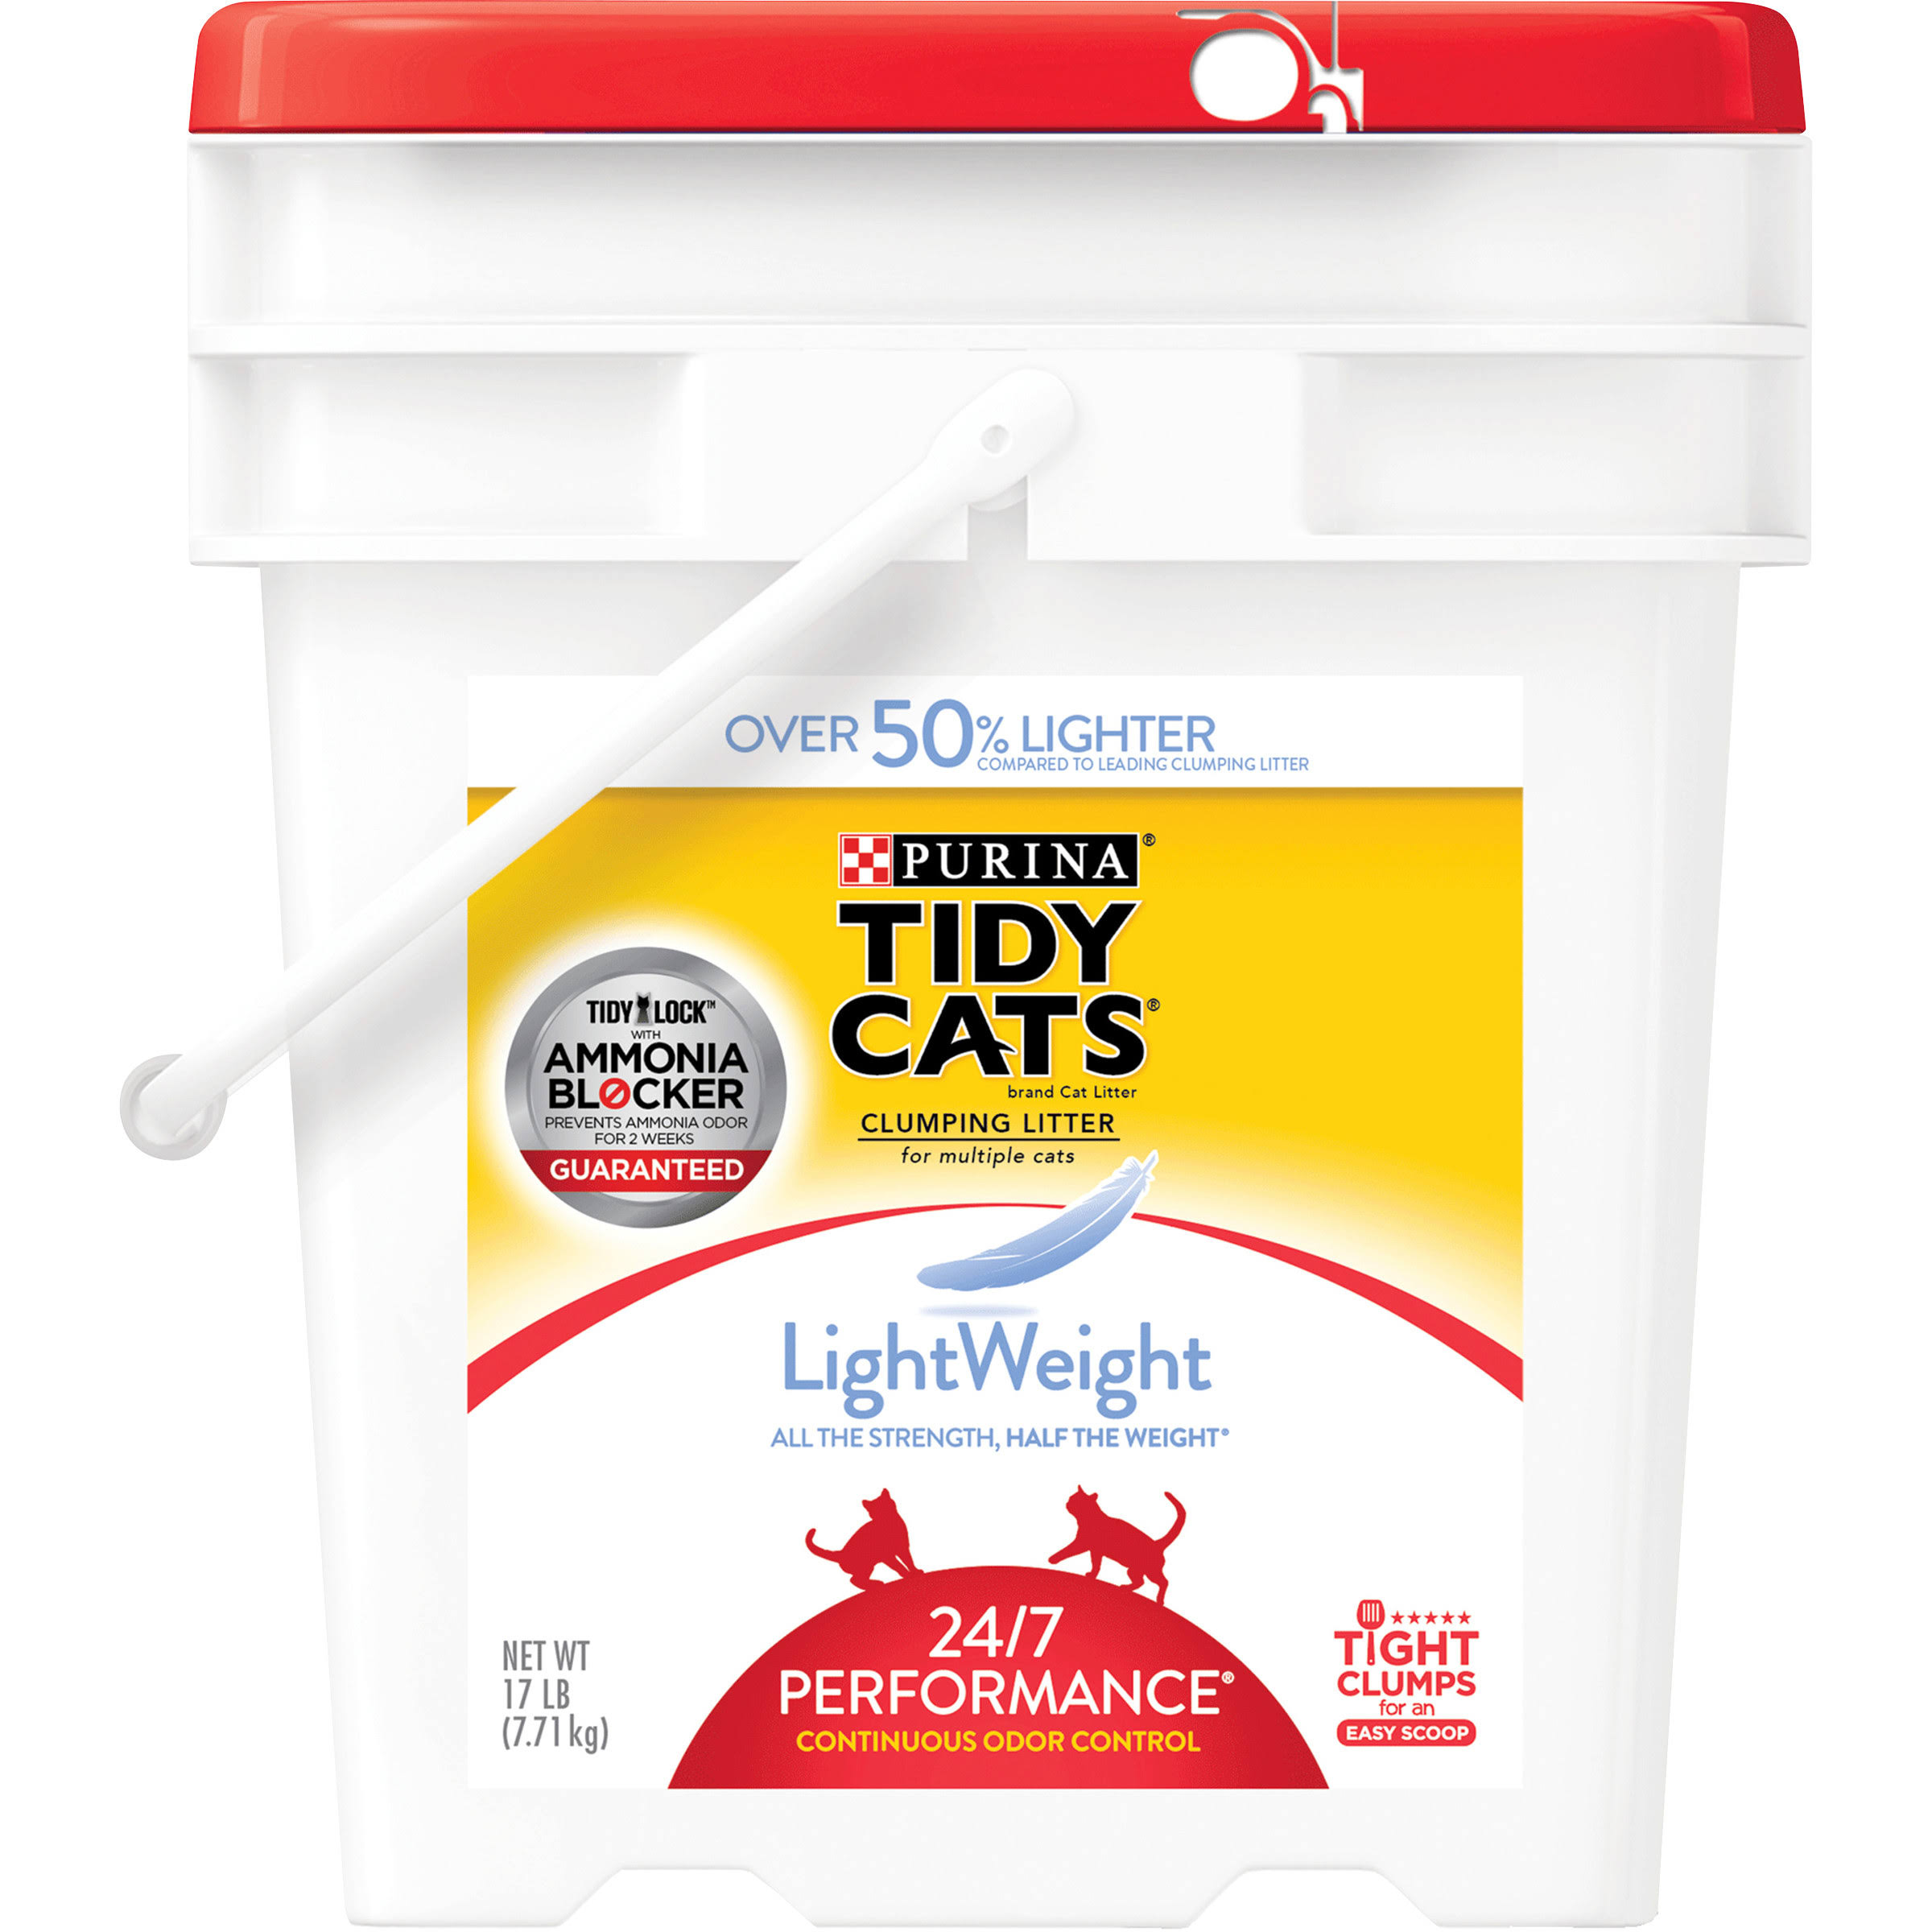 Purina Tidy Cats Light Weight 24/7 Performance Clumping Cat Litter